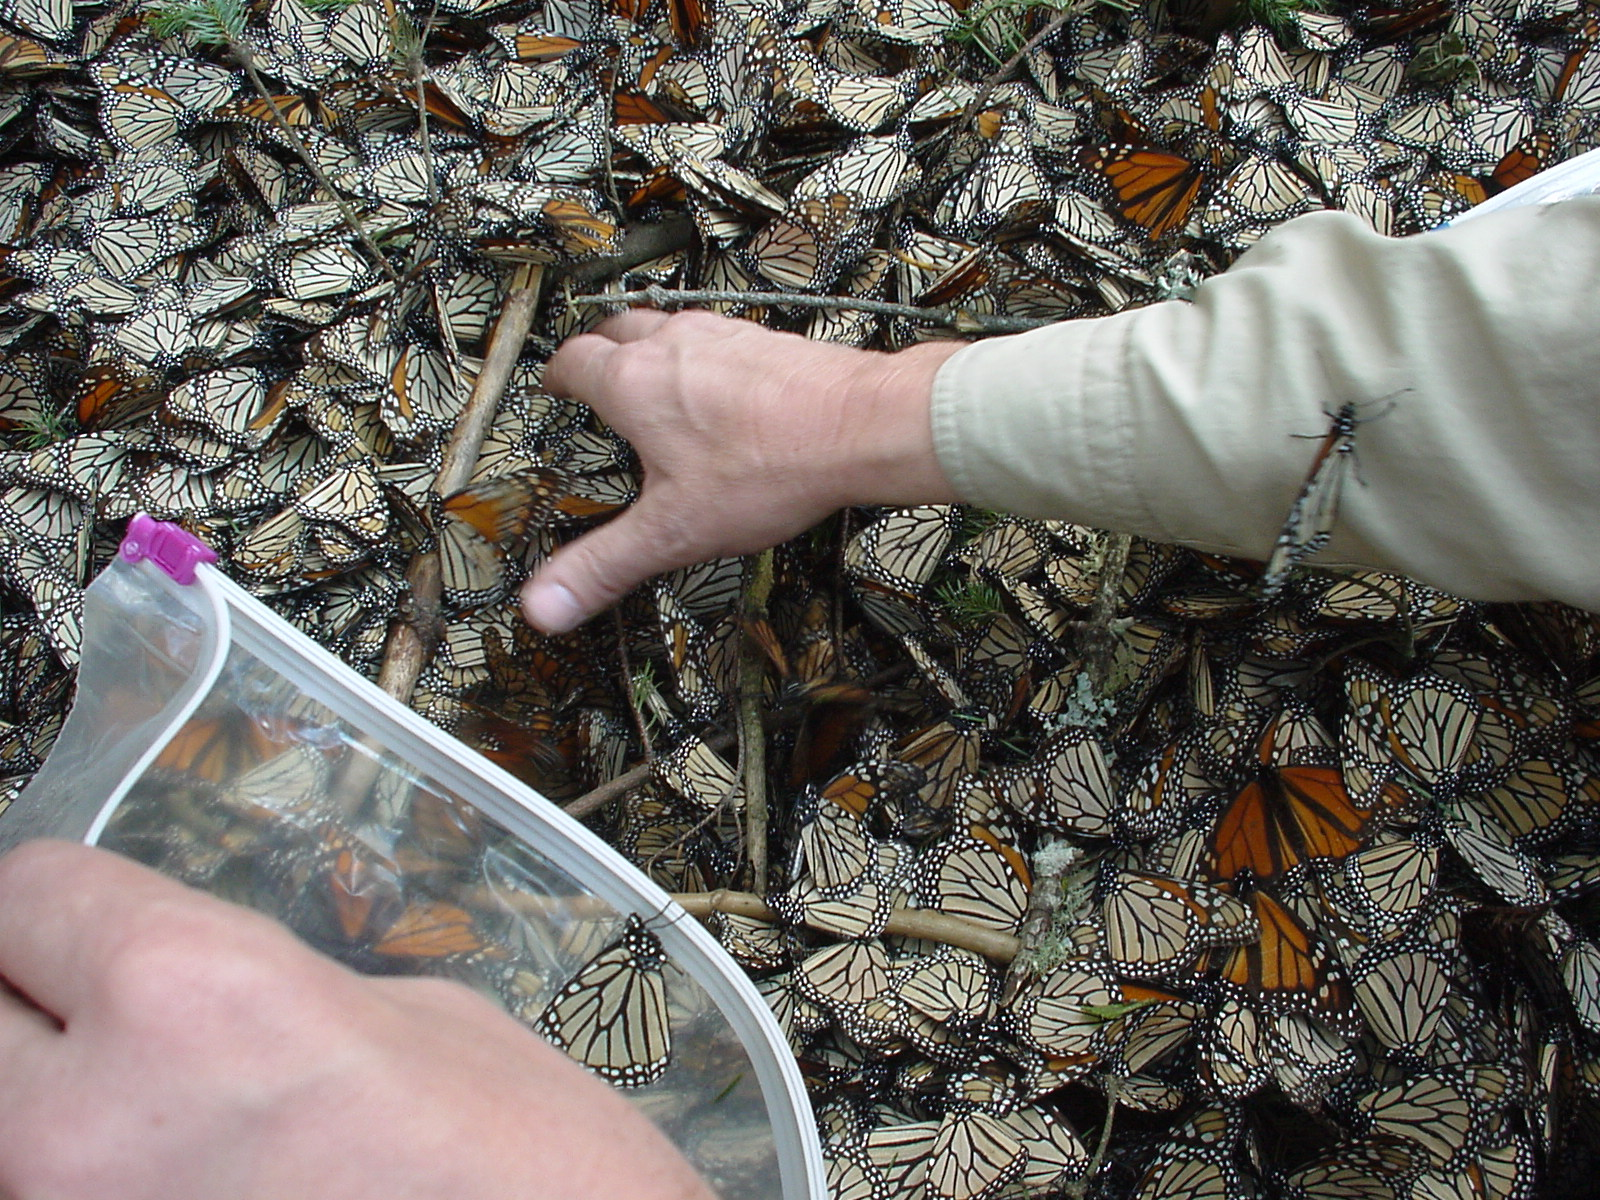 Estimating the number of butterflies per square meter